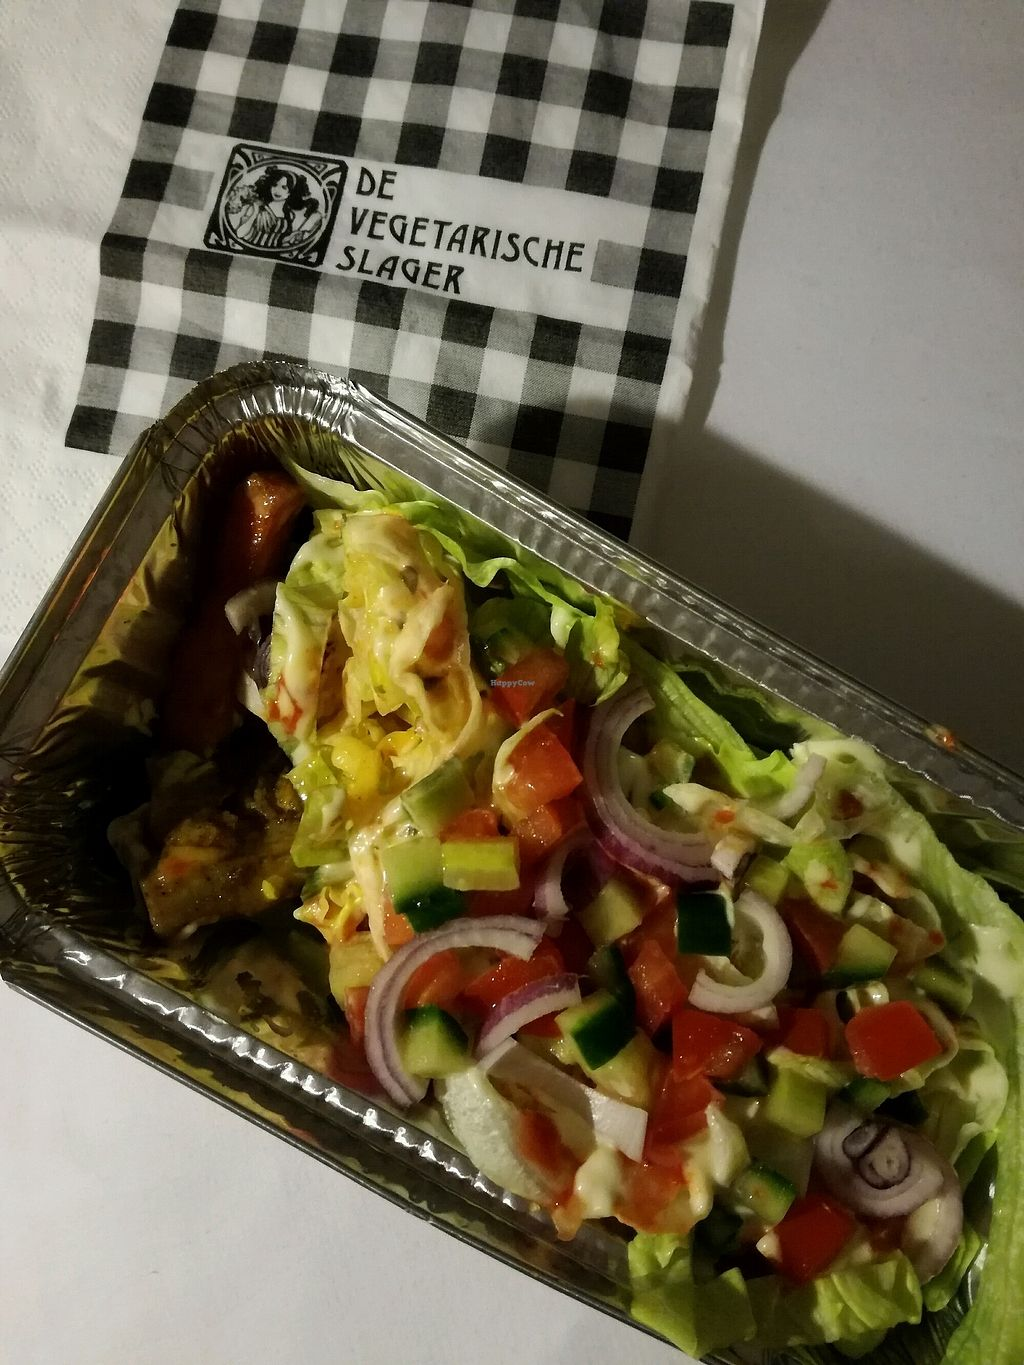 """Photo of De Vegetarische Slager - The Vegetarian Butcher  by <a href=""""/members/profile/adoremus523"""">adoremus523</a> <br/>shawarma! <br/> February 1, 2018  - <a href='/contact/abuse/image/25293/353699'>Report</a>"""